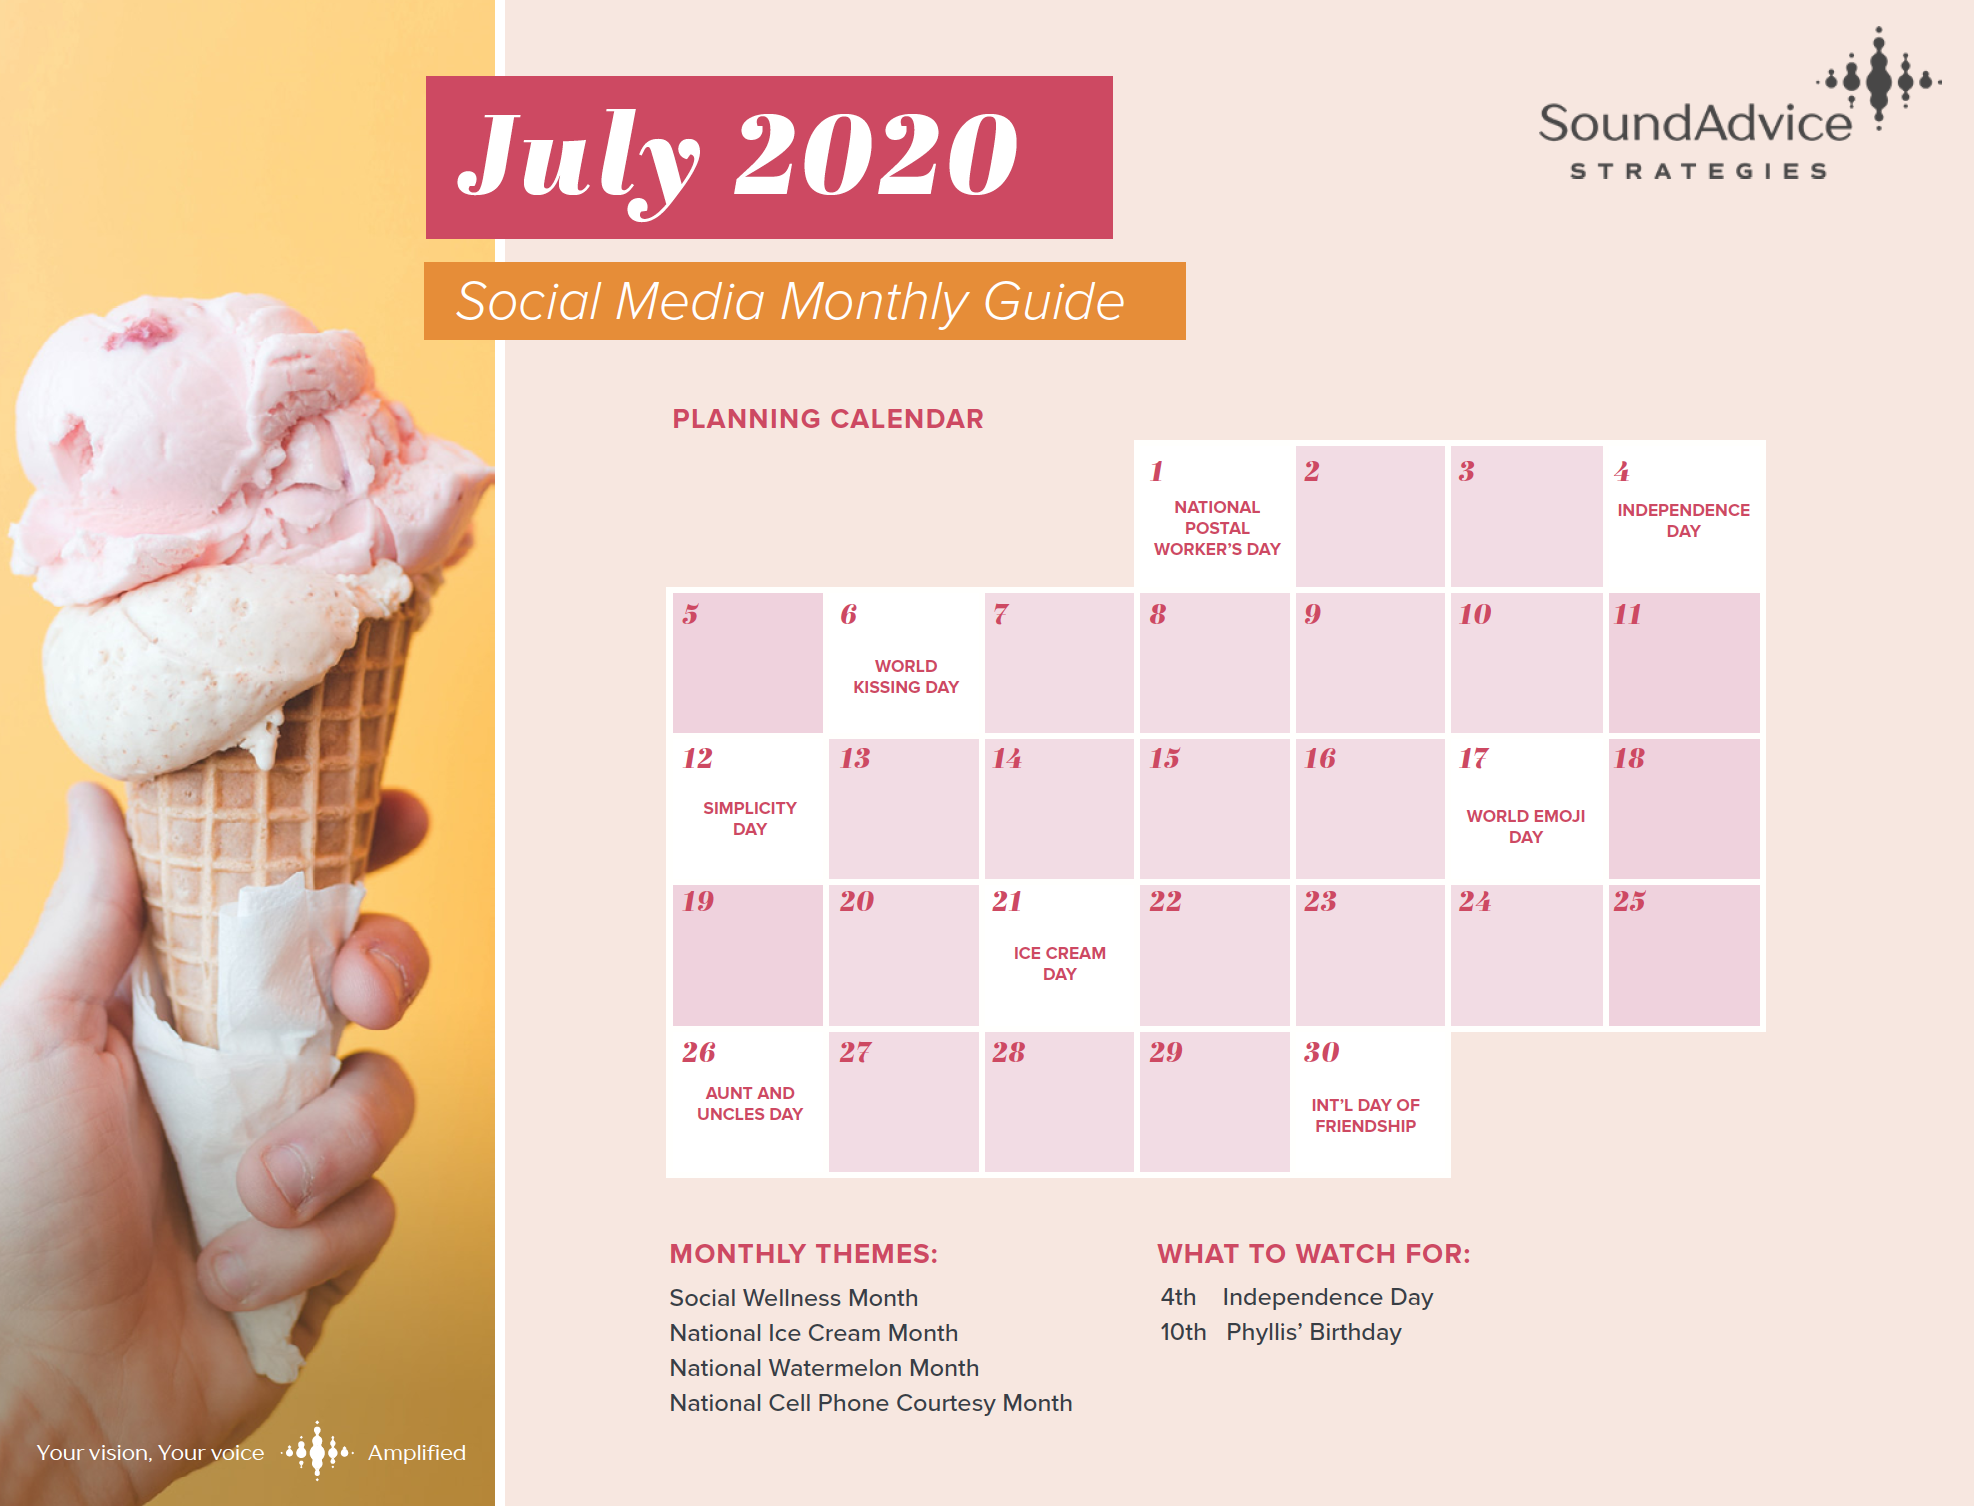 Highlights from the July Content Calendar